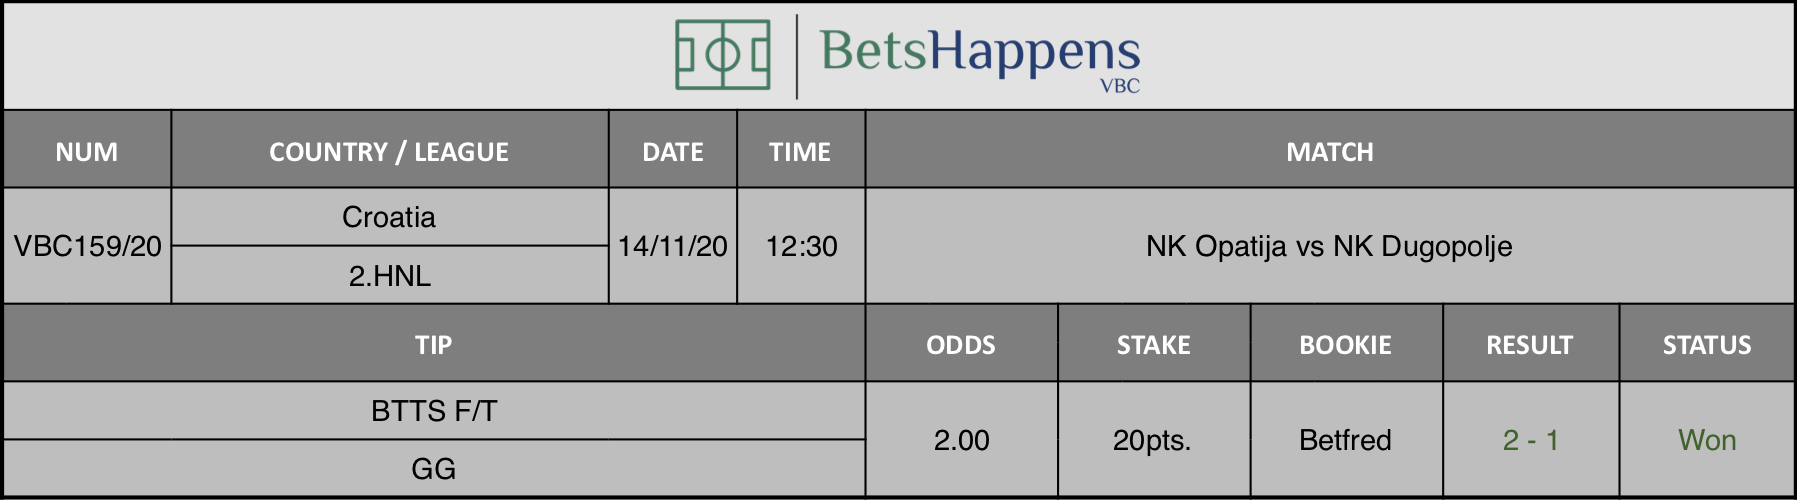 Results of our tip for the NK Opatija vs NK Dugopolje match where BTTS F/T  GG is recommended.